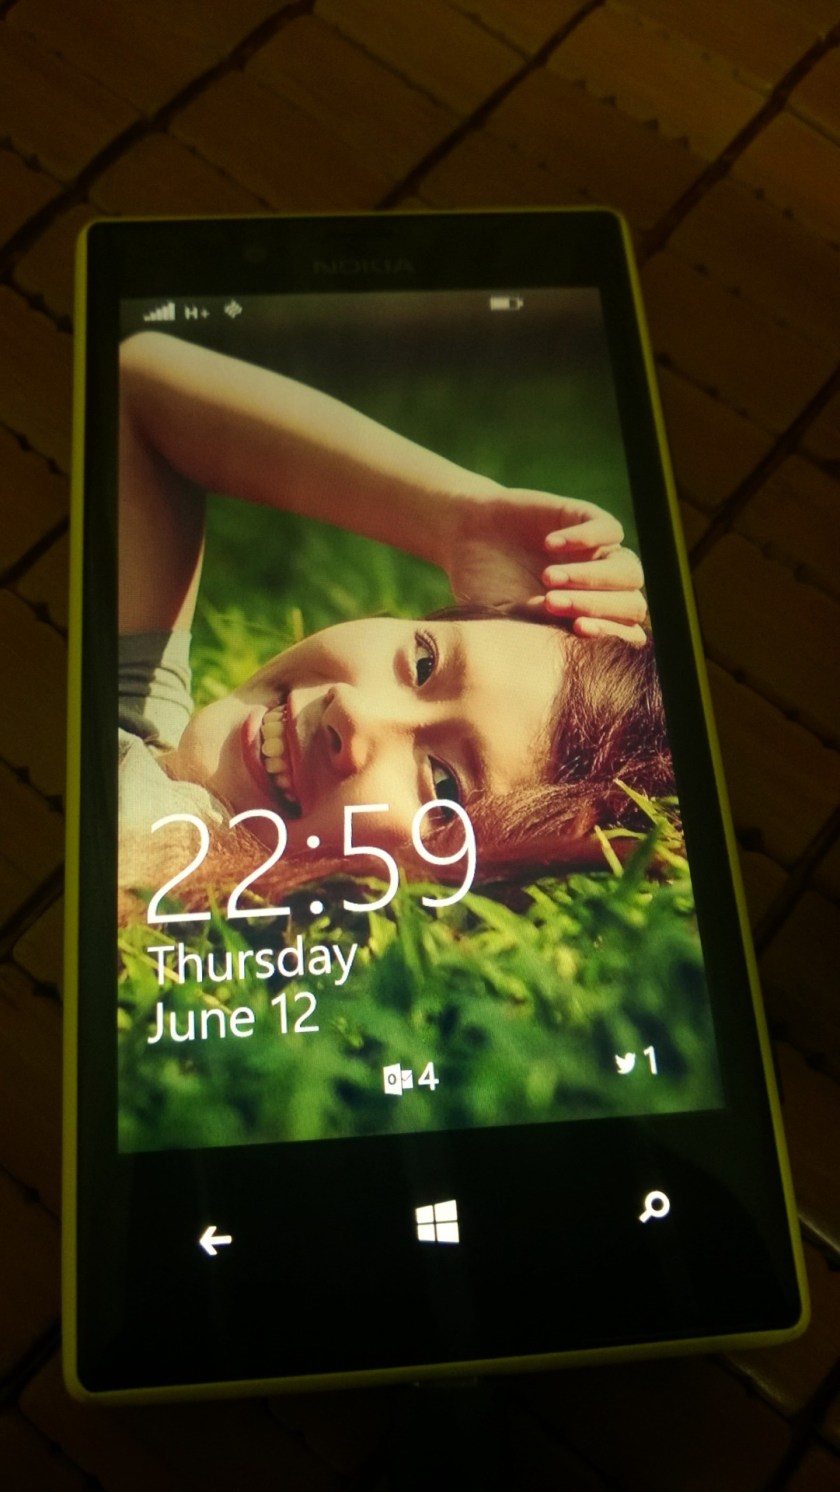 My Nokia Lumia 720's lockscreen